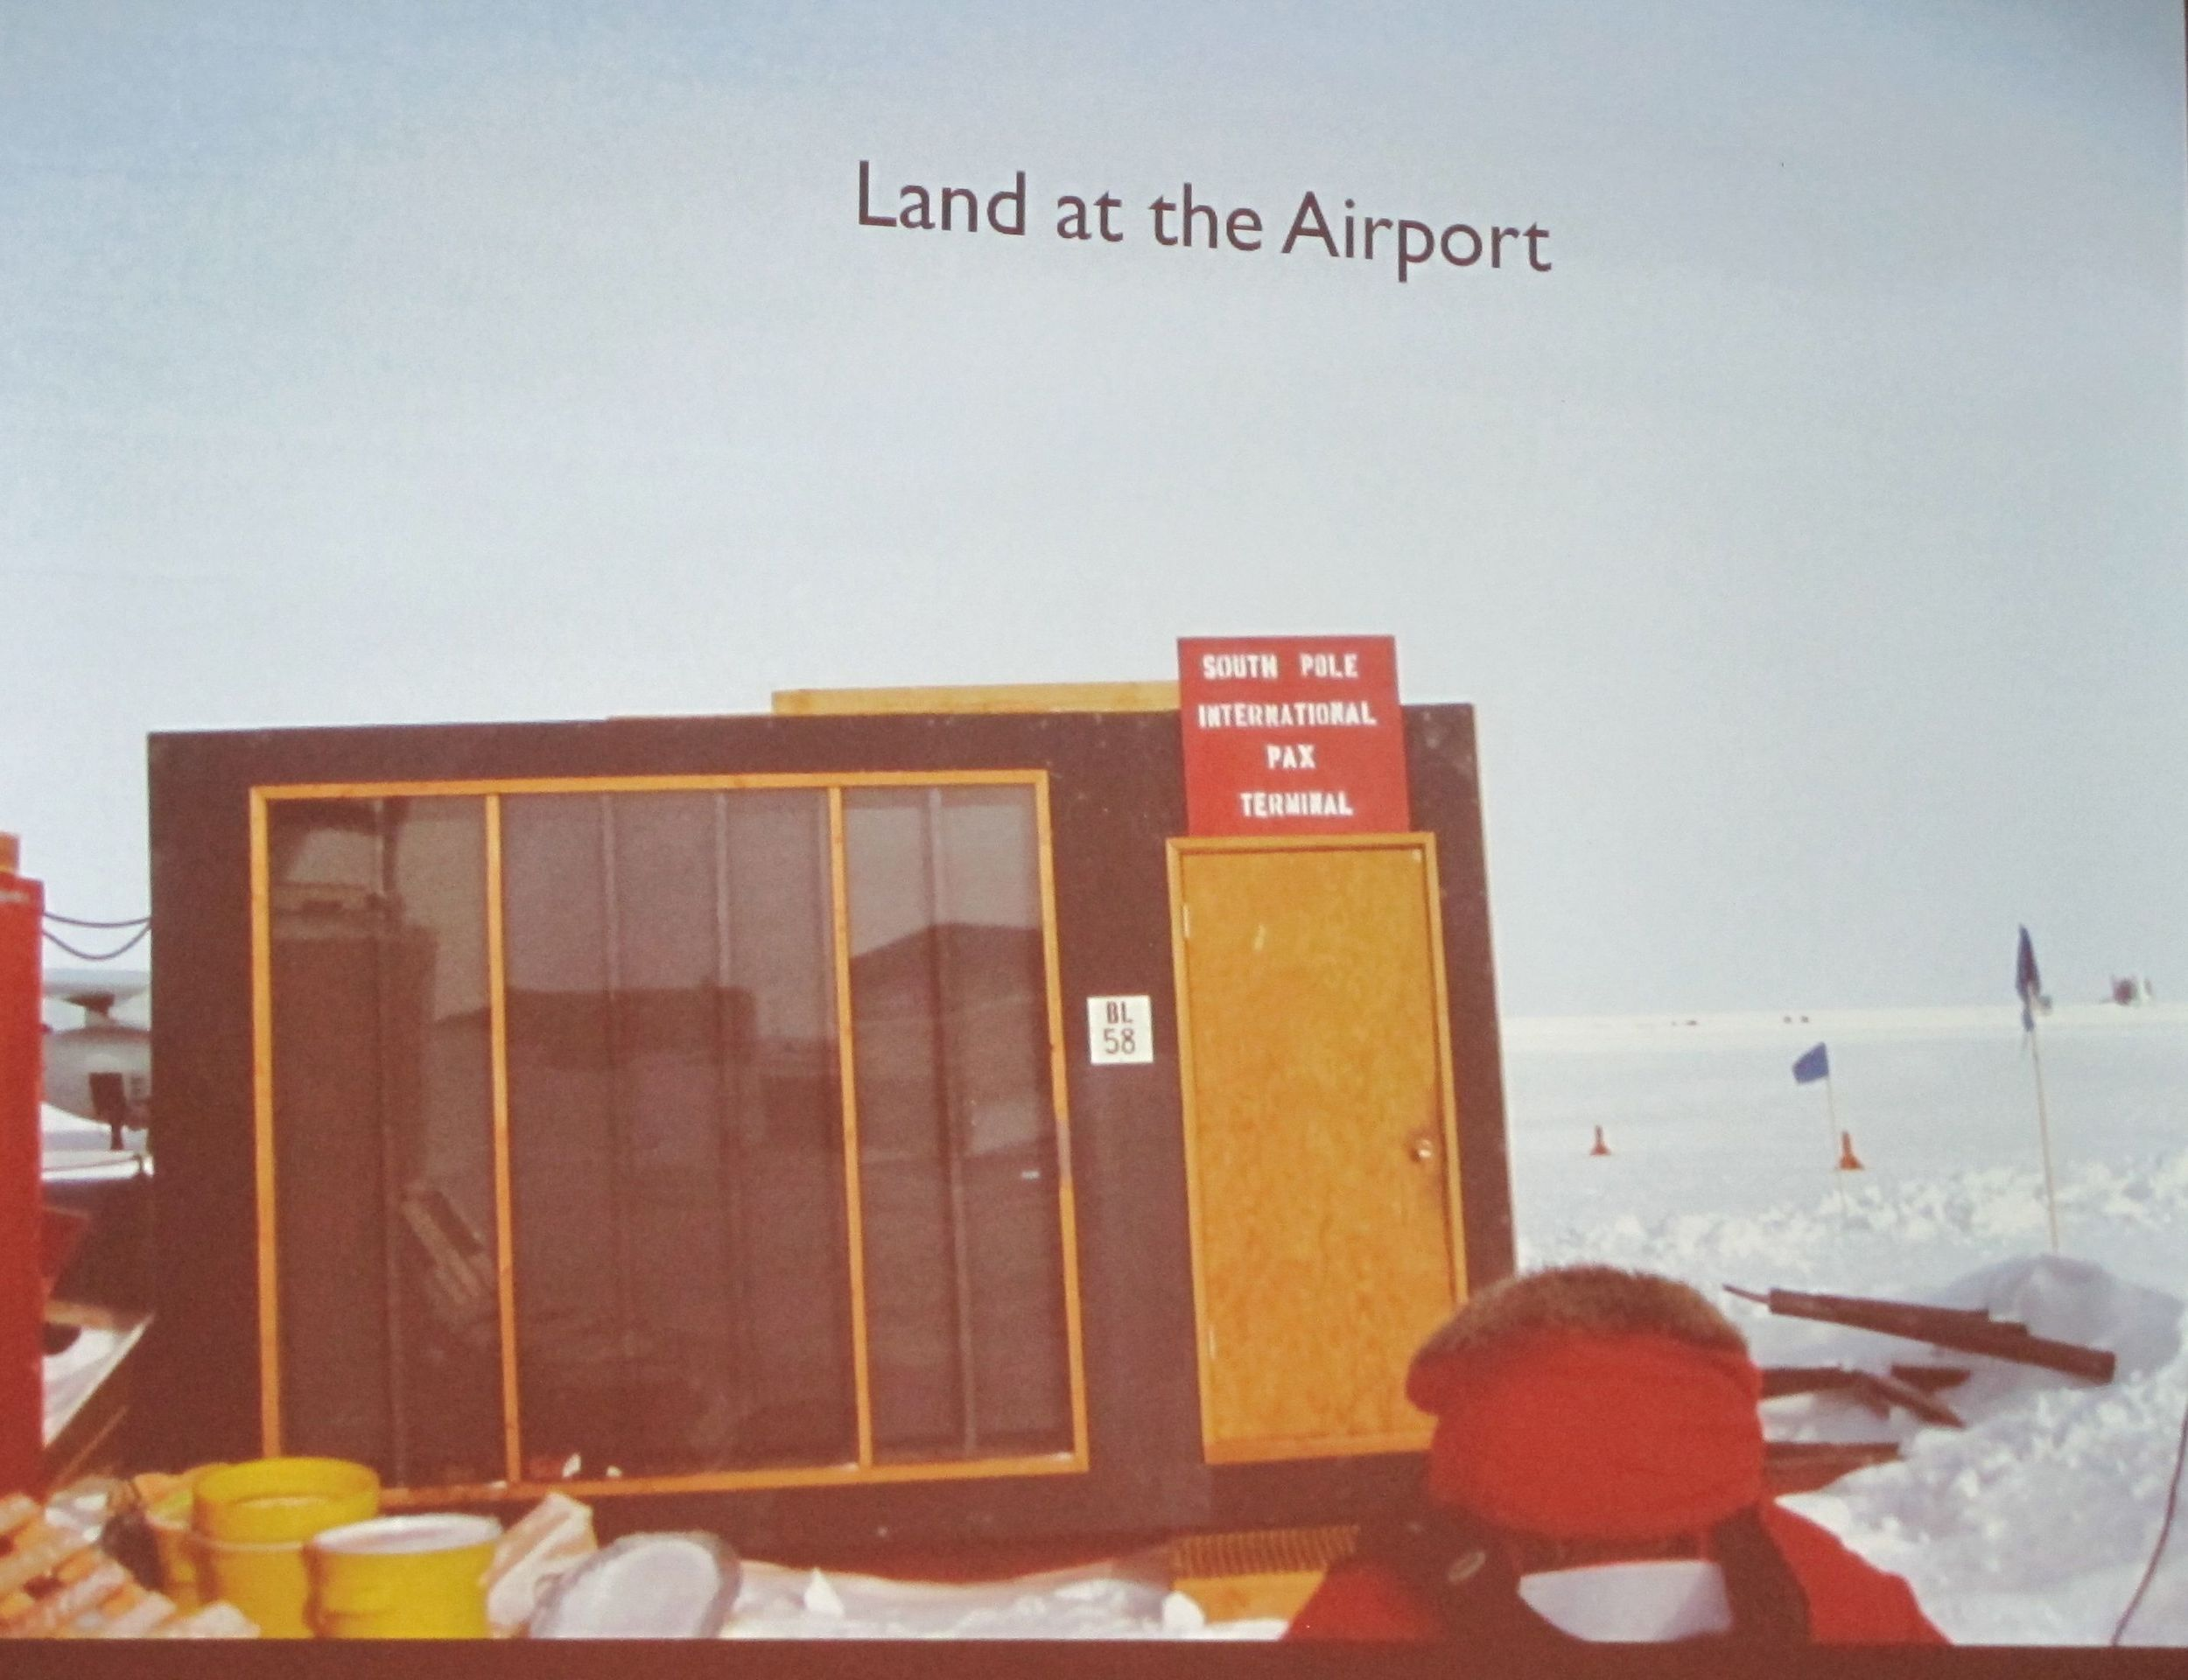 Just FYI, this is Brian's photo of the passenger terminal at the South Pole.